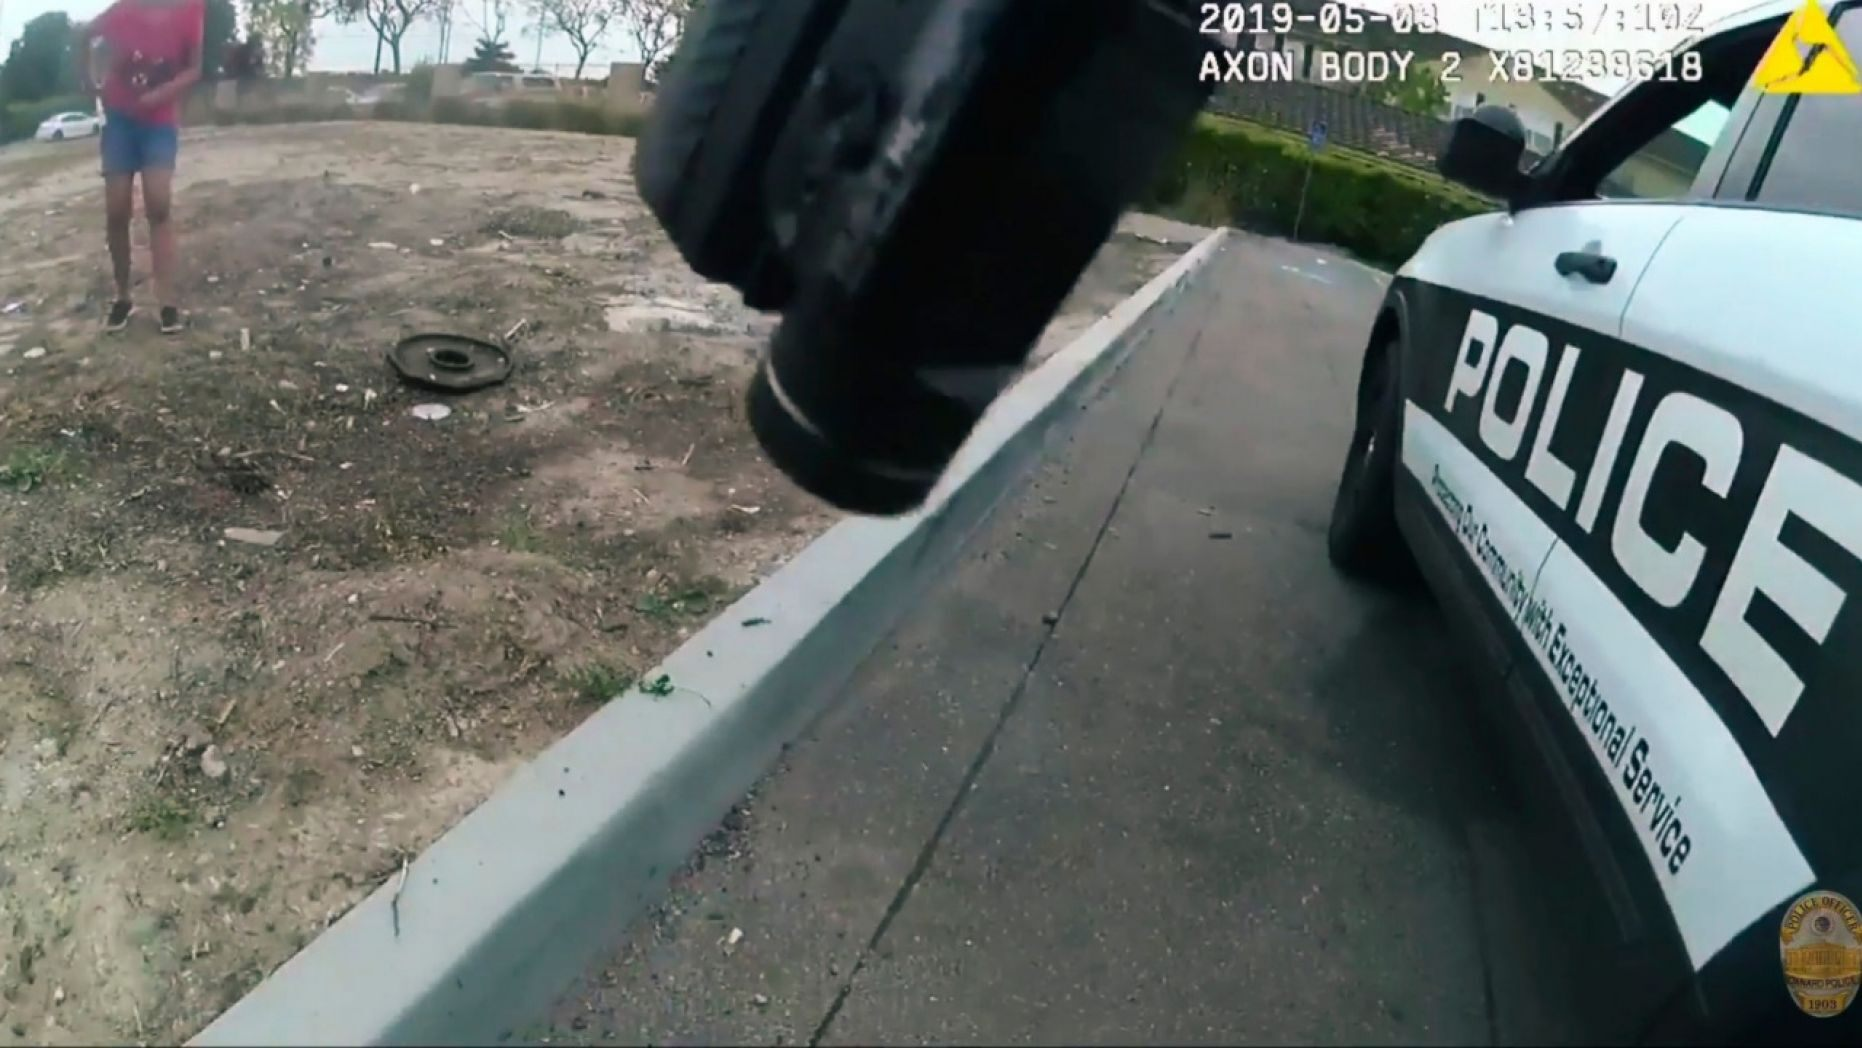 Body camera footage showed